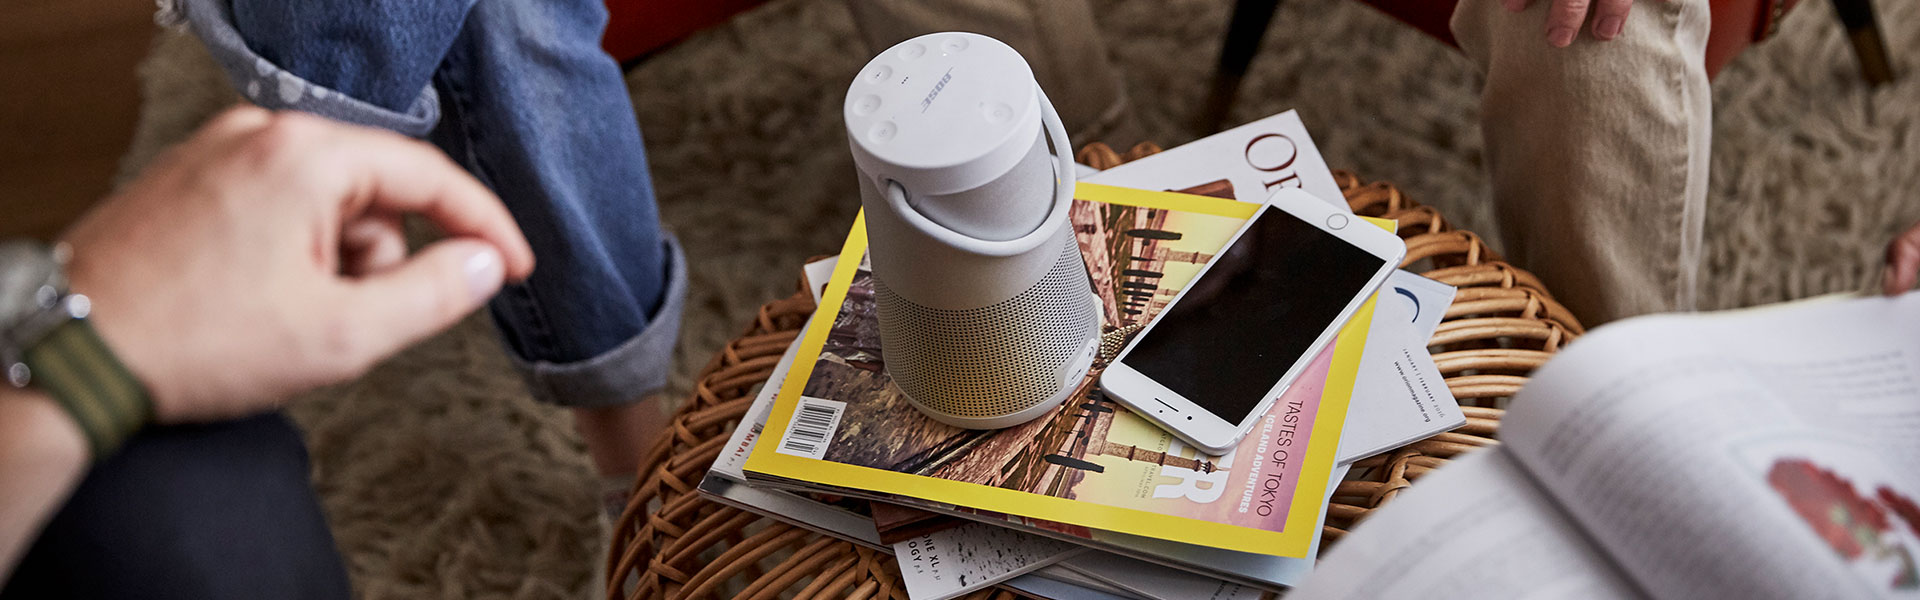 Bose SoundLink Revolve Review: 360° of Wireless, Room-Filling Sound On The Go